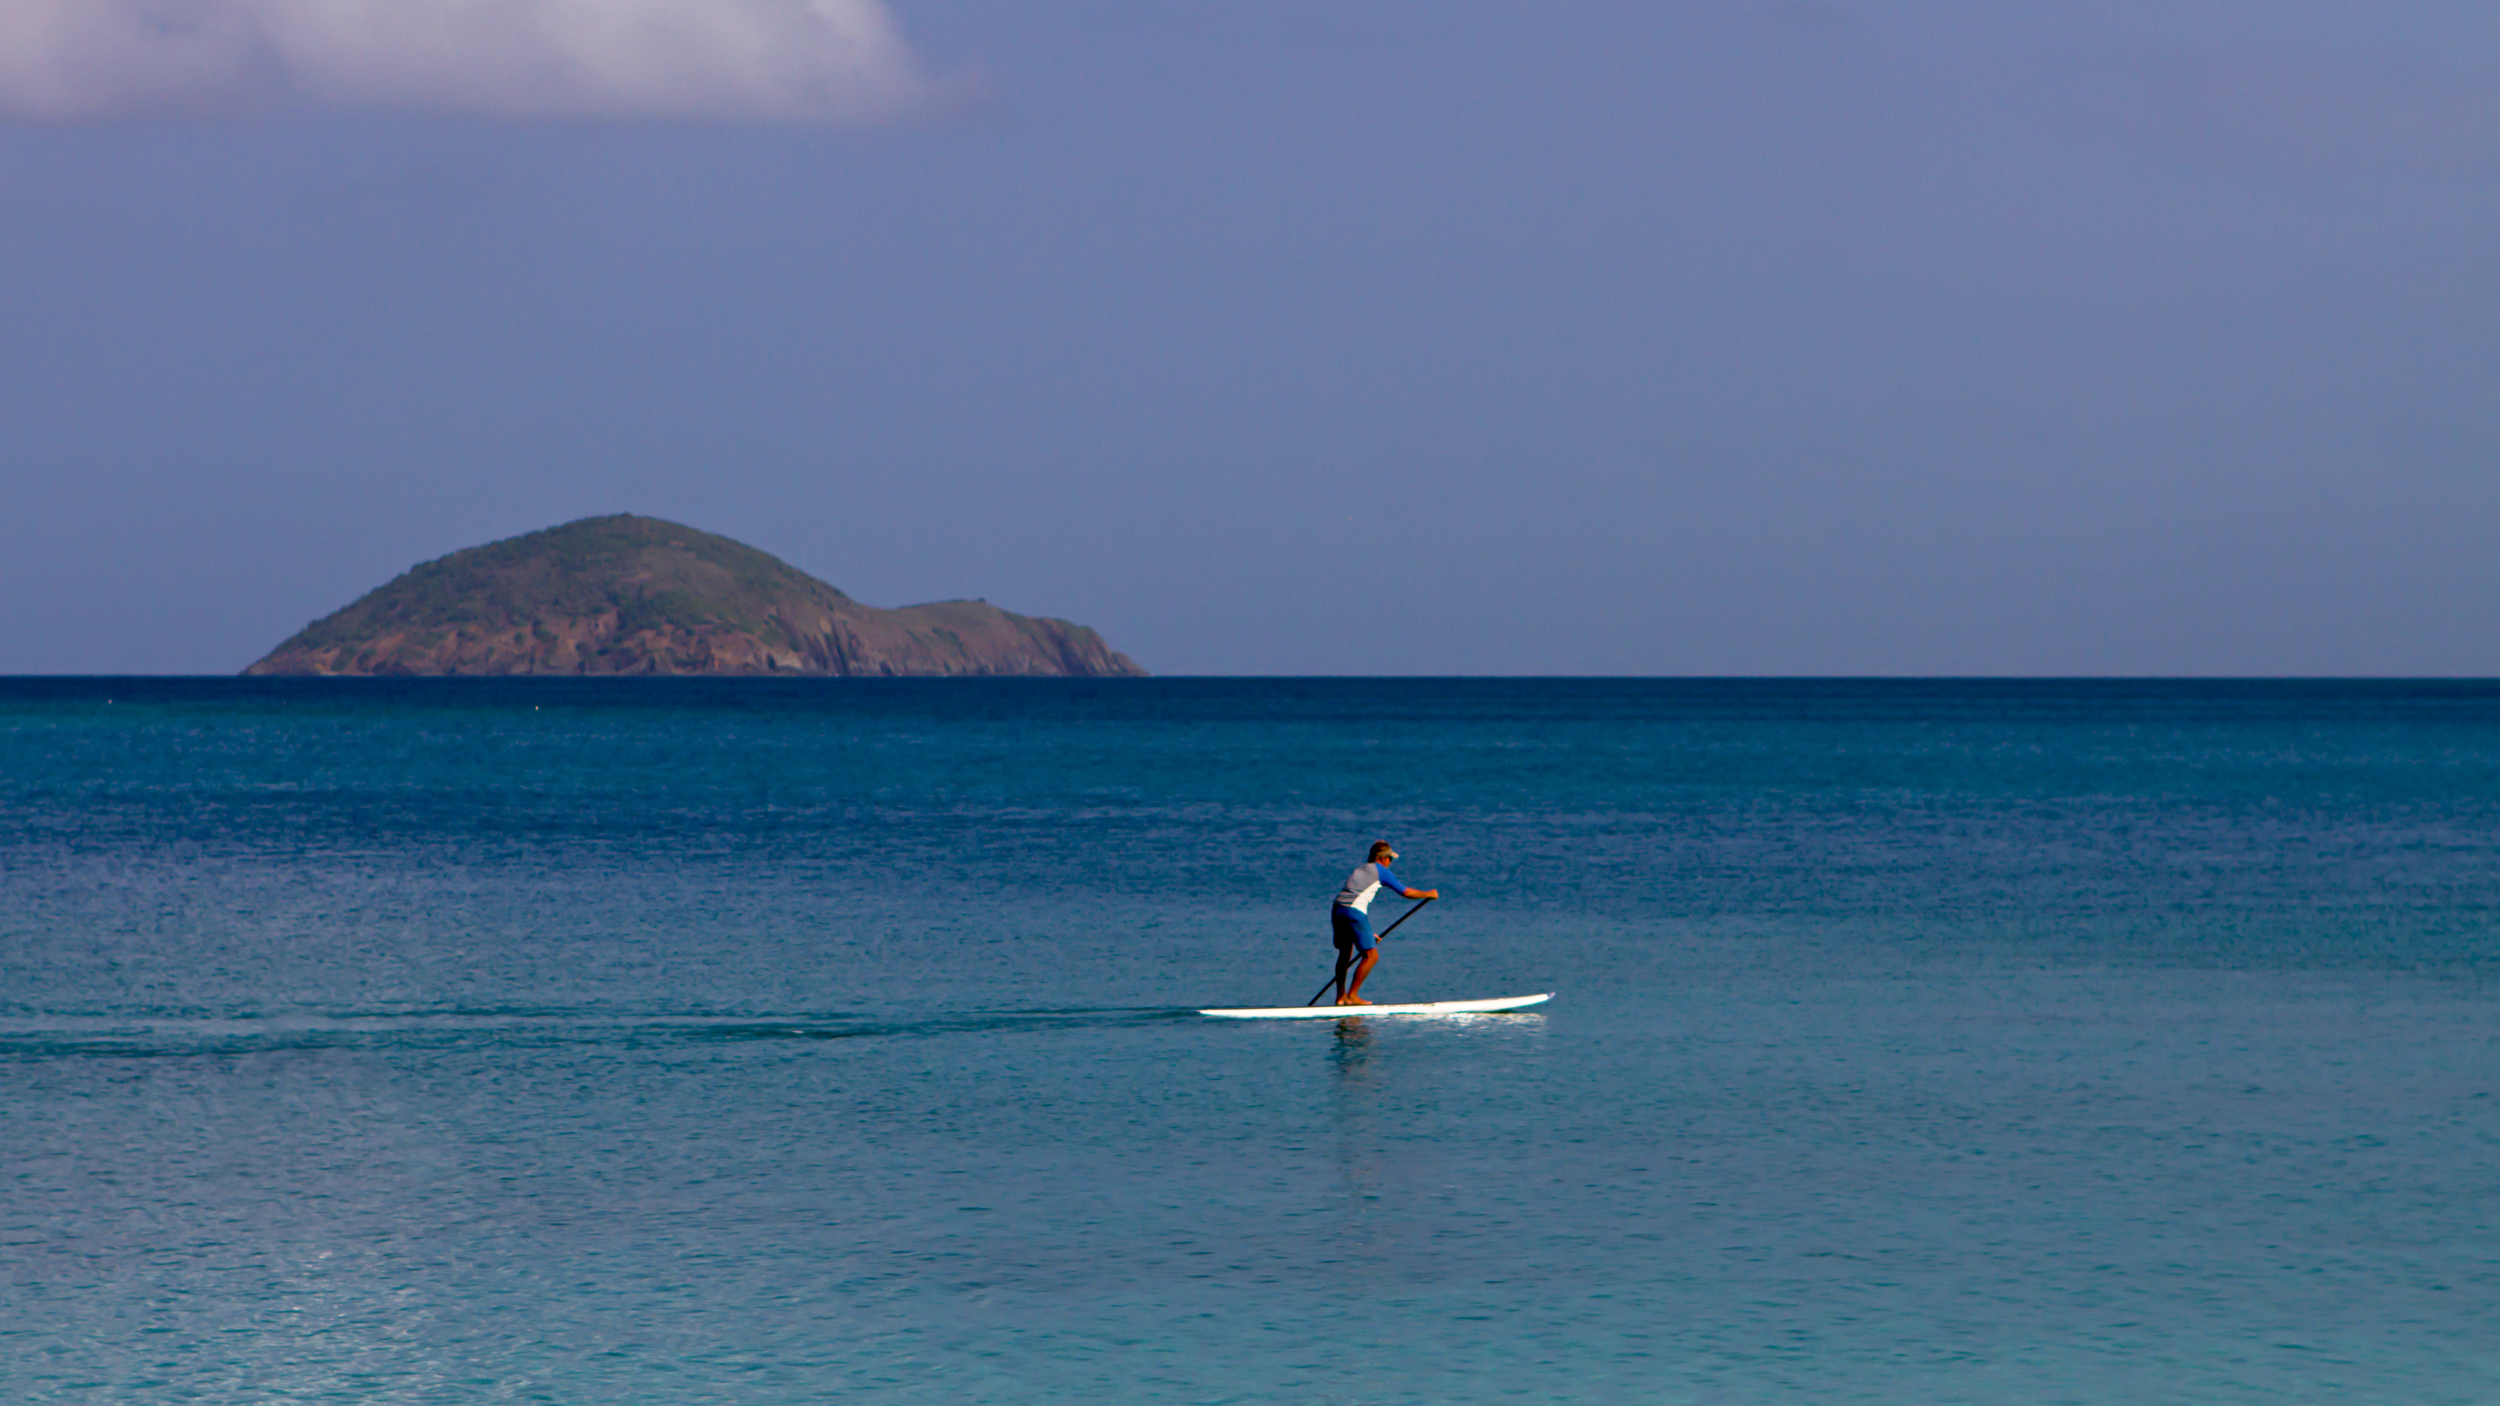 Click Photo to Enlarge | St. Thomas, US Virgin Islands   |  © Carl Nethercutt